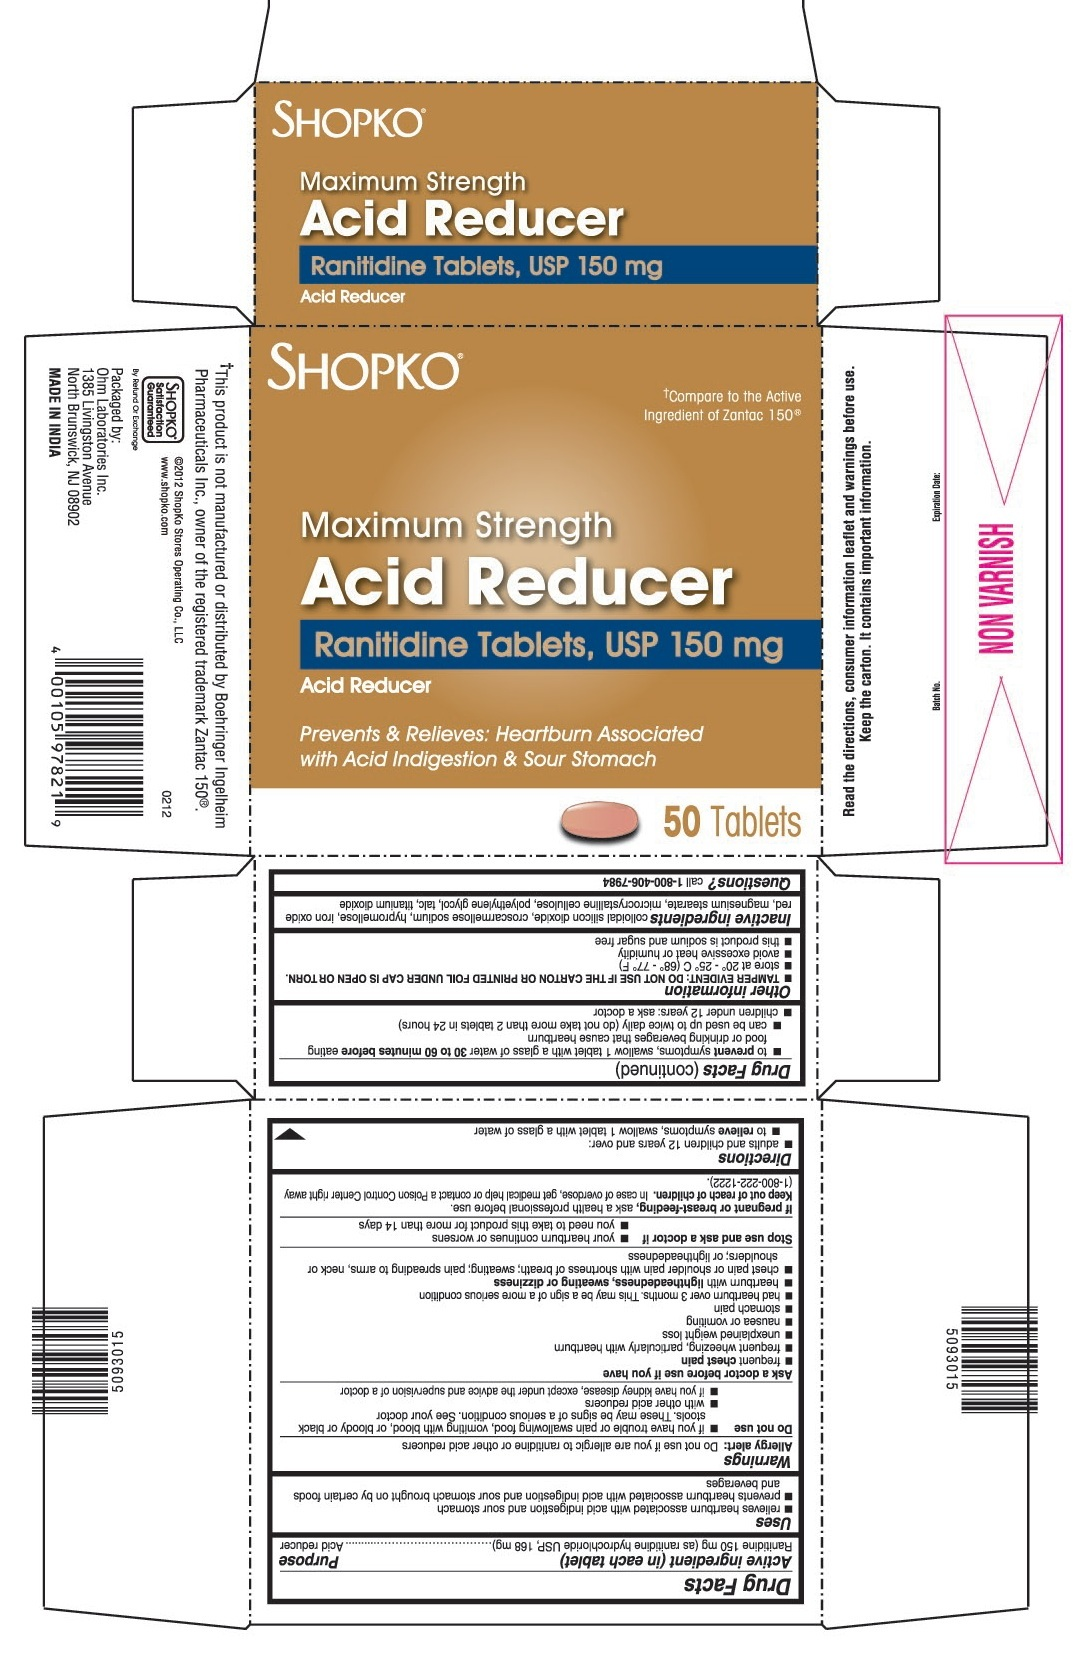 This is the 50 count bottle carton label for Shopko Ranitidine tablets, USP 150 mg.